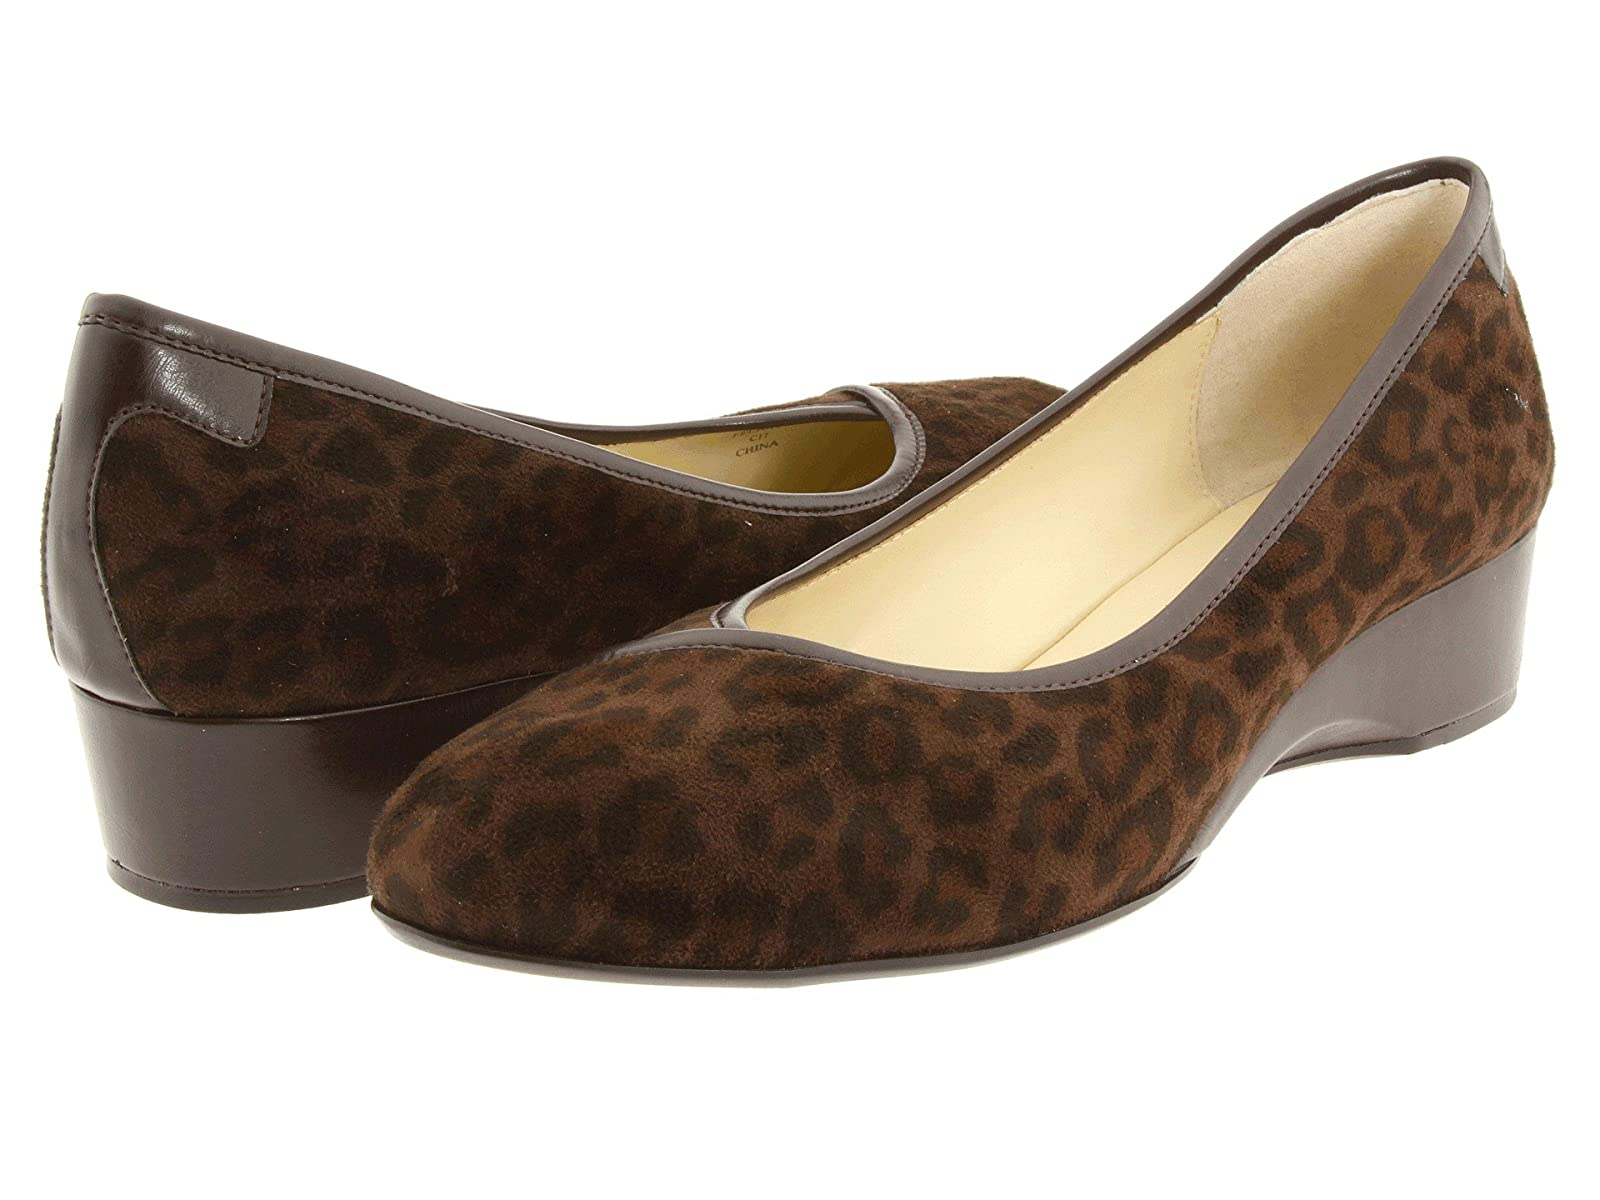 Taryn Rose FelicityCheap and distinctive eye-catching shoes